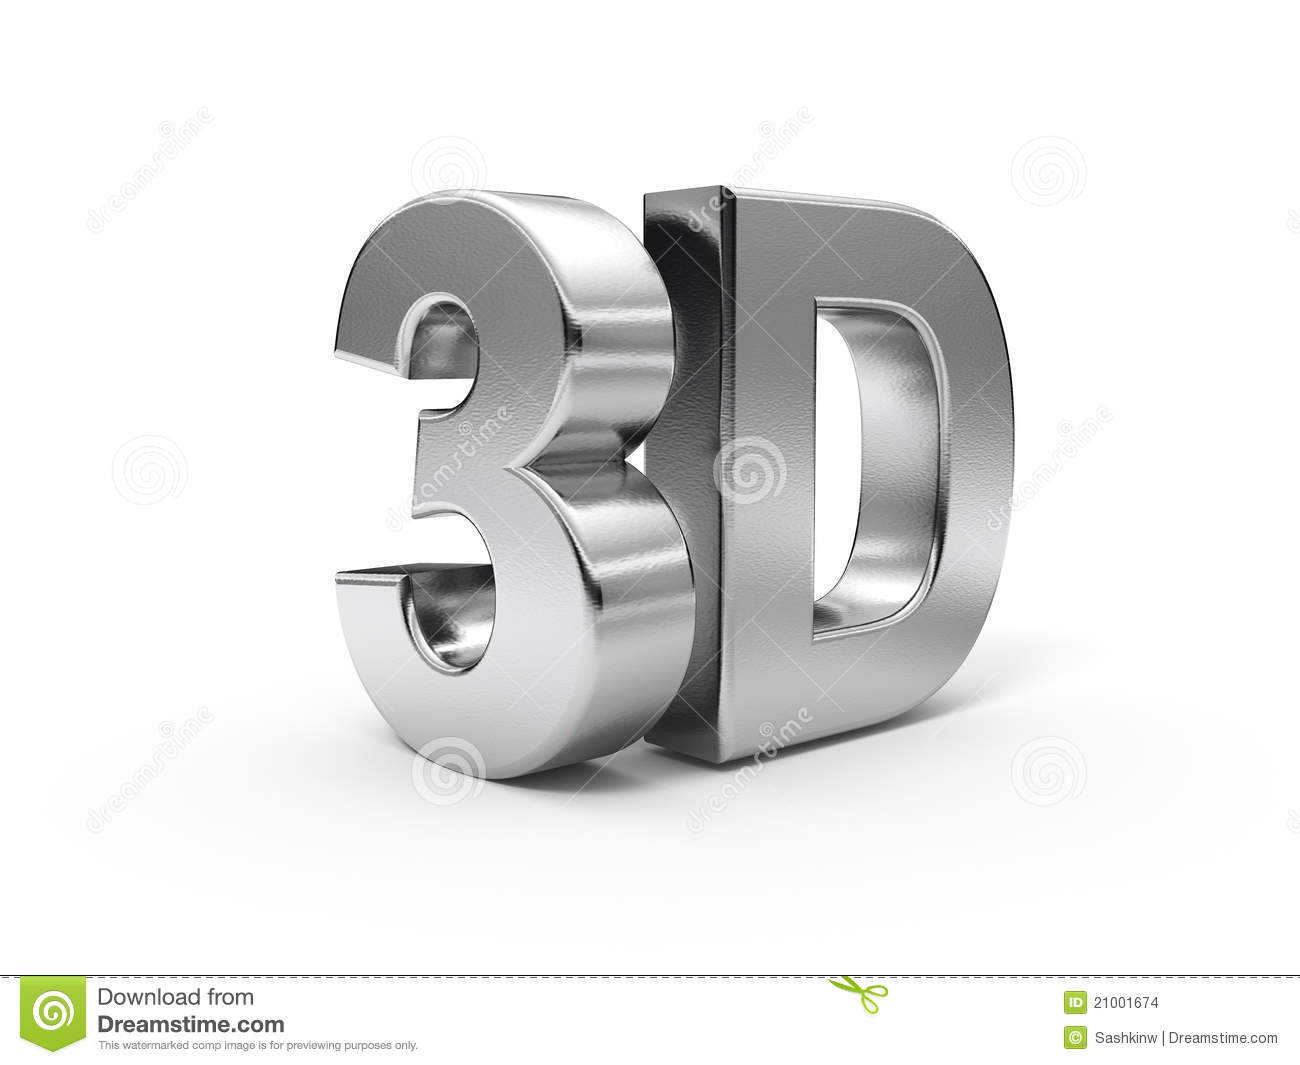 Http Www Dreamstime Com Stock Images Metallic 3d Word Image21001674